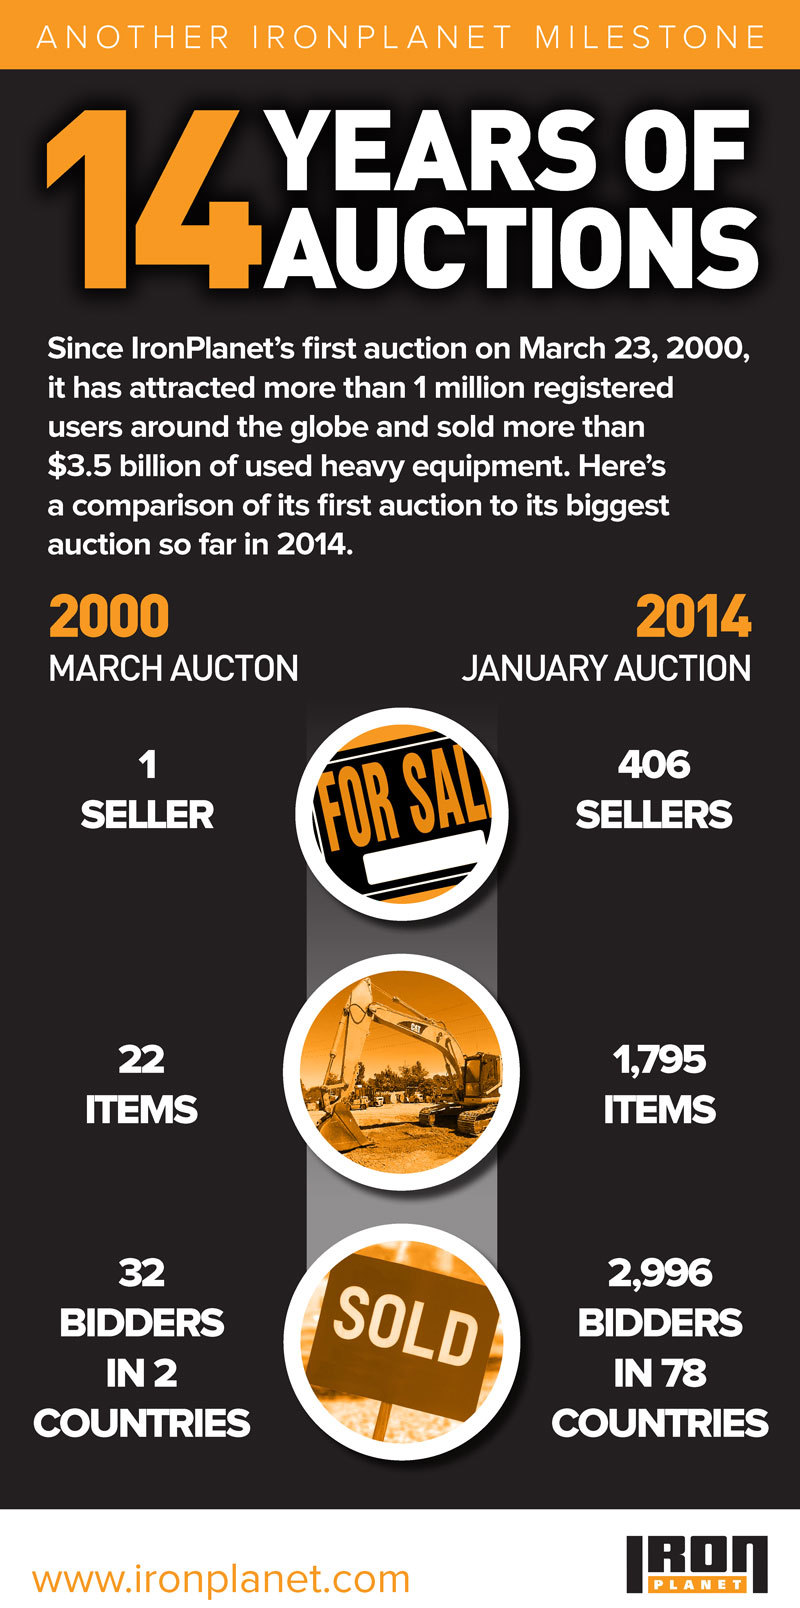 IronPlanet celebrates 14 years of auctions. (Graphic: Business Wire)